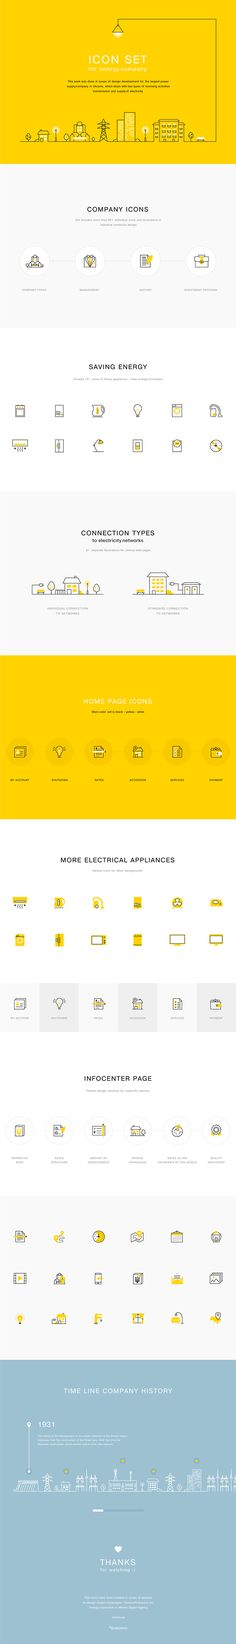 Icon set for energy company, Oksana Shemet, 2017: Illustration as iconography. Simplest way to convey a quick message.